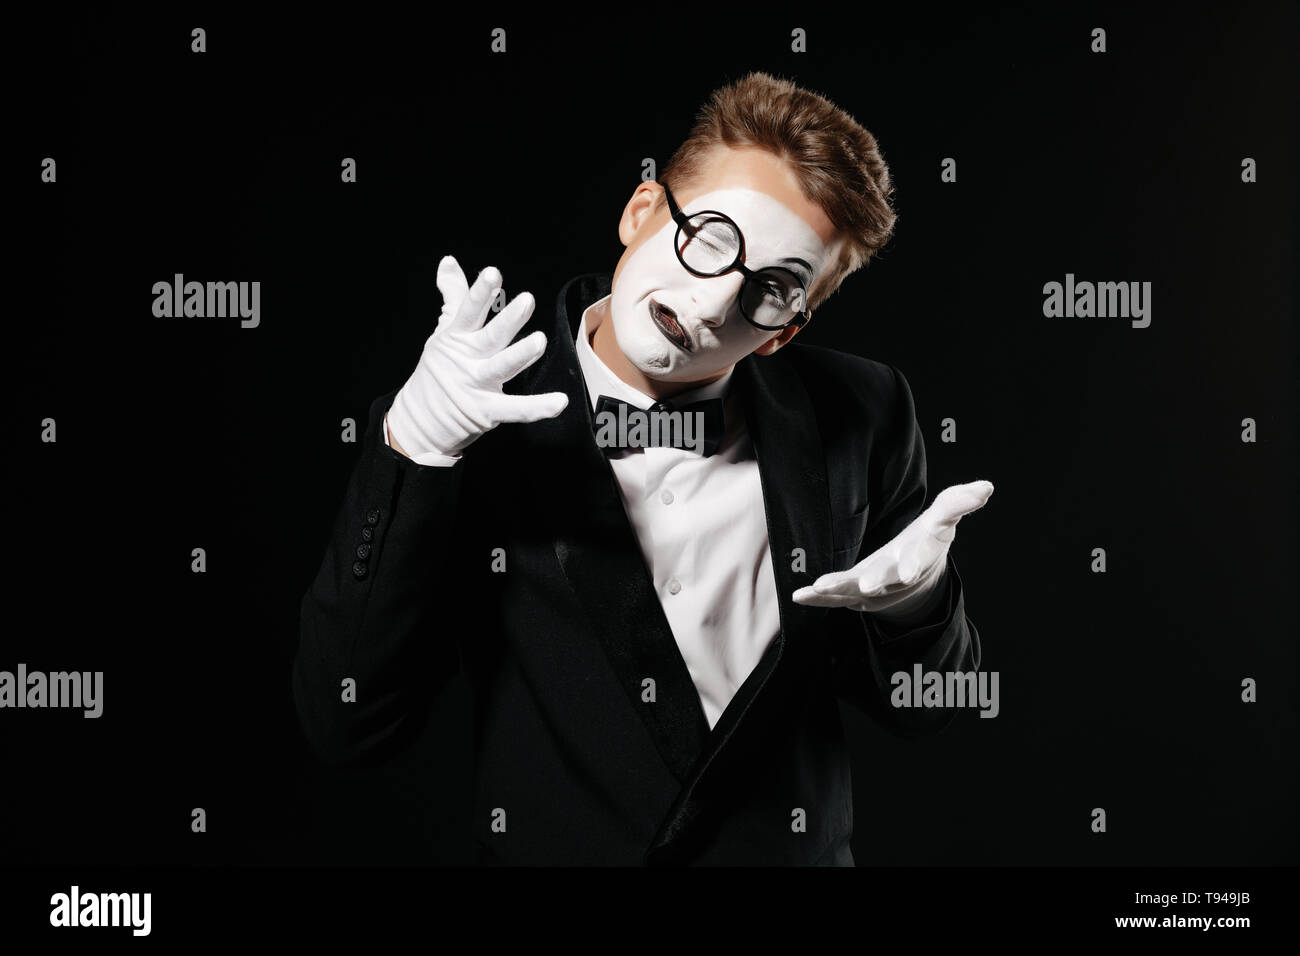 portrait of mime man in tuxedo and glasses on black background - Stock Image